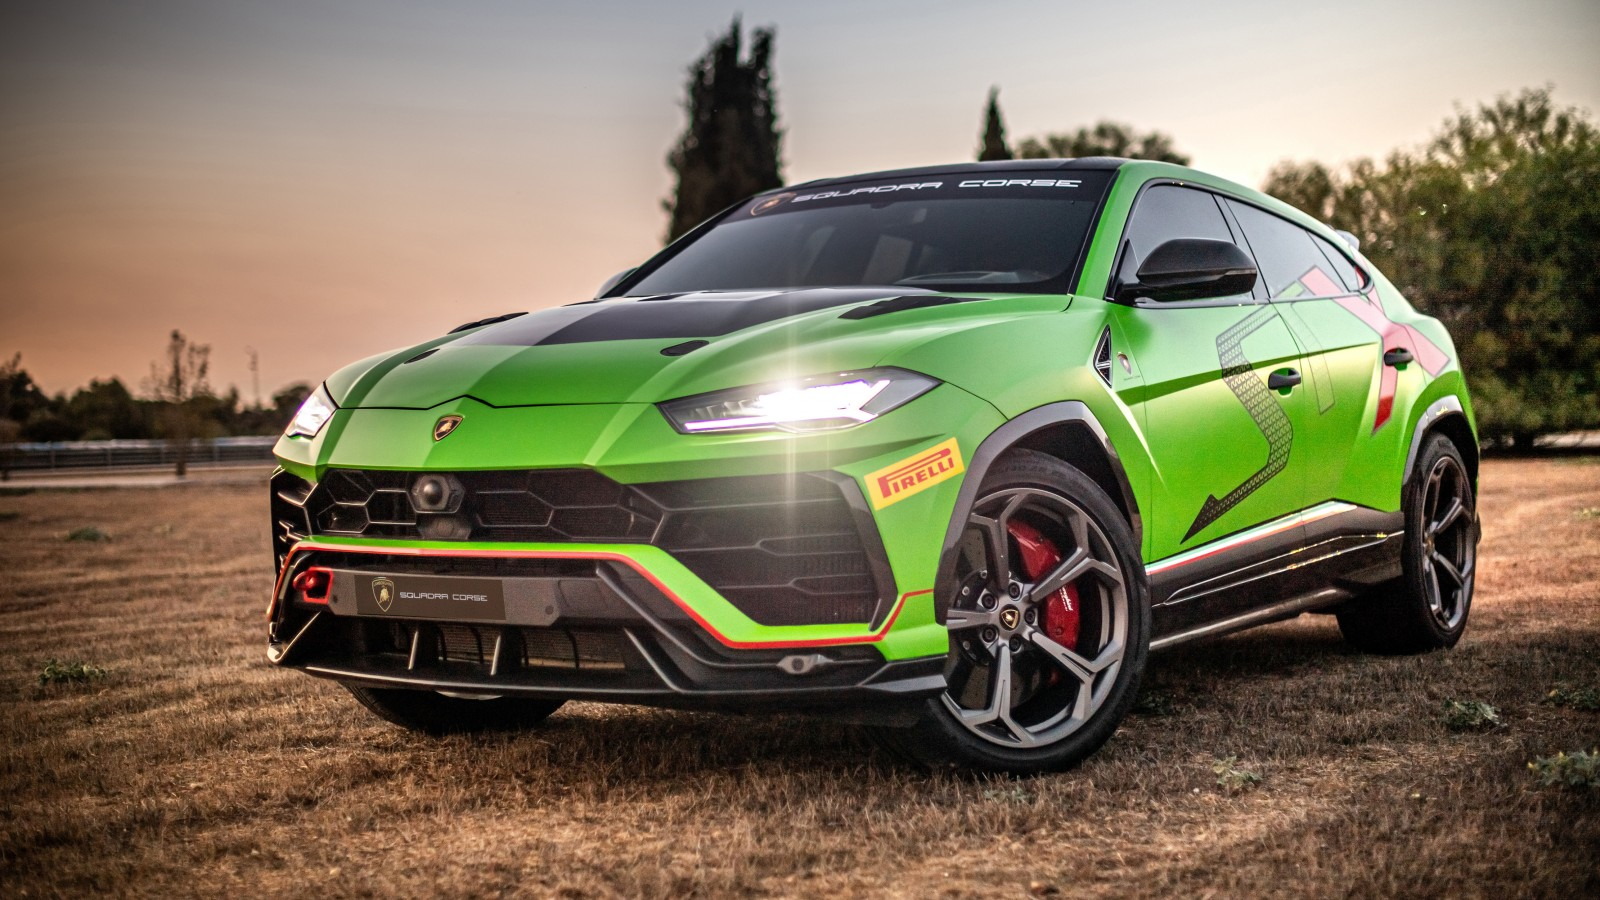 Lamborghini Urus ST-X 2020 4K Wallpaper | HD Car ...